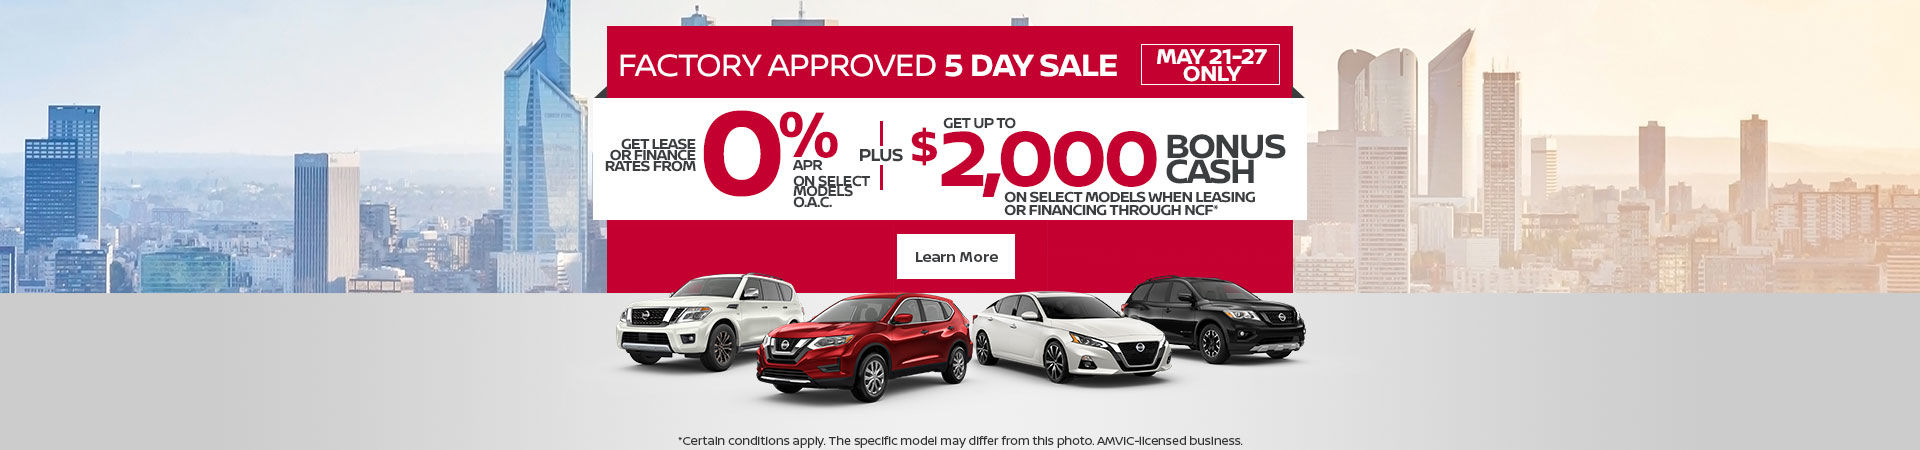 Nissan Event (5-day sale)